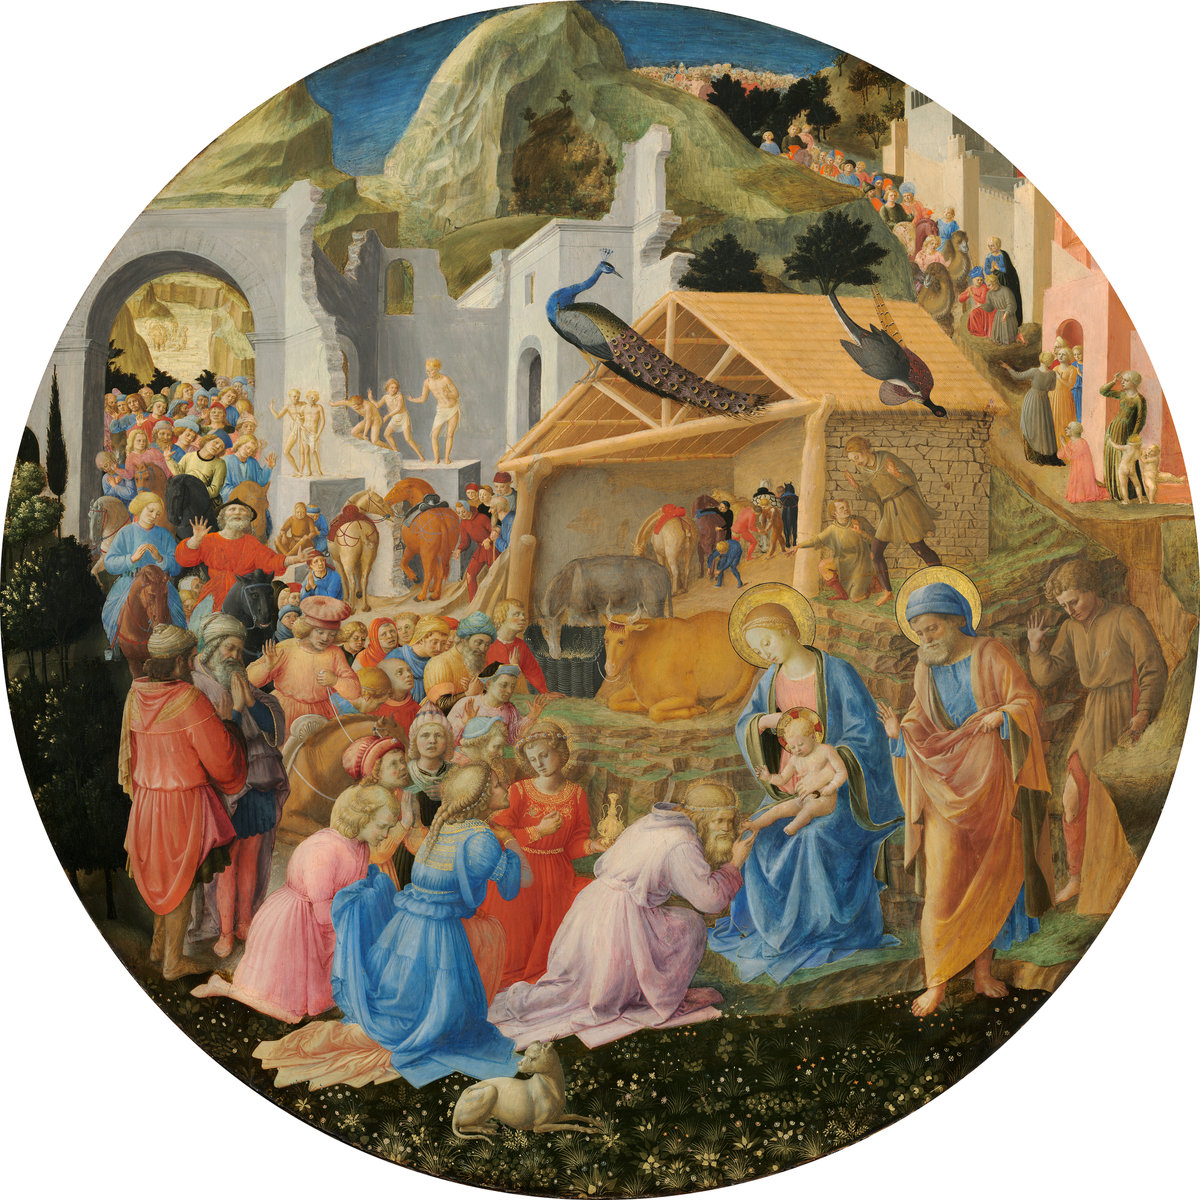 Fra Angelico and Fra Filippo Lippi (Italian, c. 1395 - 1455 ), The Adoration of the Magi, c. 1440/1460, tempera on panel. Washington, National Gallery, Samuel H. Kress Collection. Photo: National Gallery